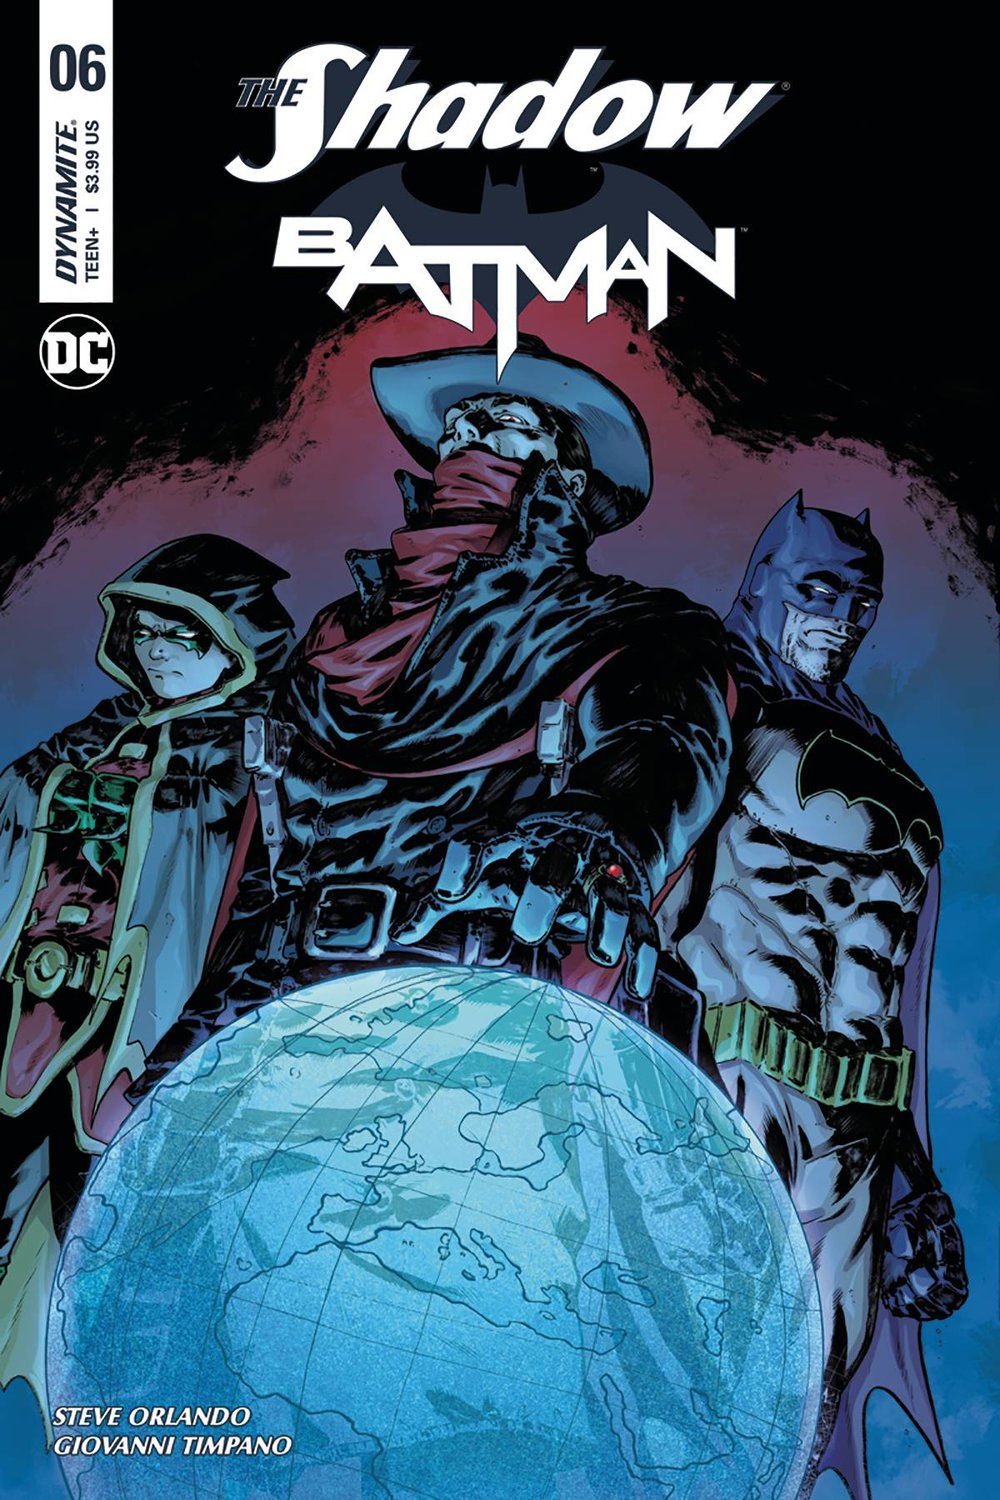 SHADOW BATMAN 6 of 6 CVR E TIMPANO EXC SUBSCRIPTION VAR.jpg